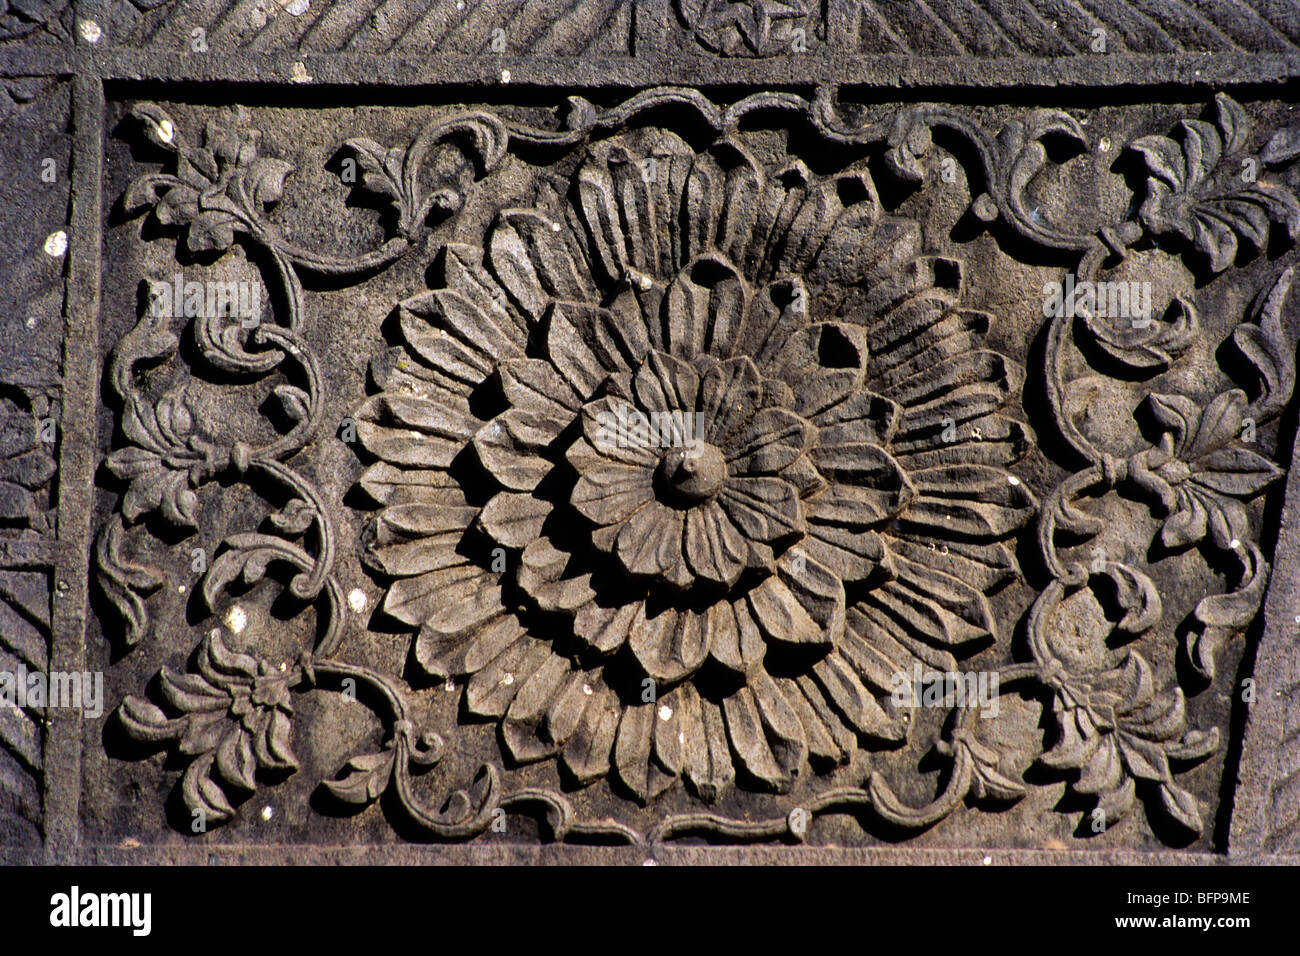 Mmn flowers stone carving at lord shiva temple